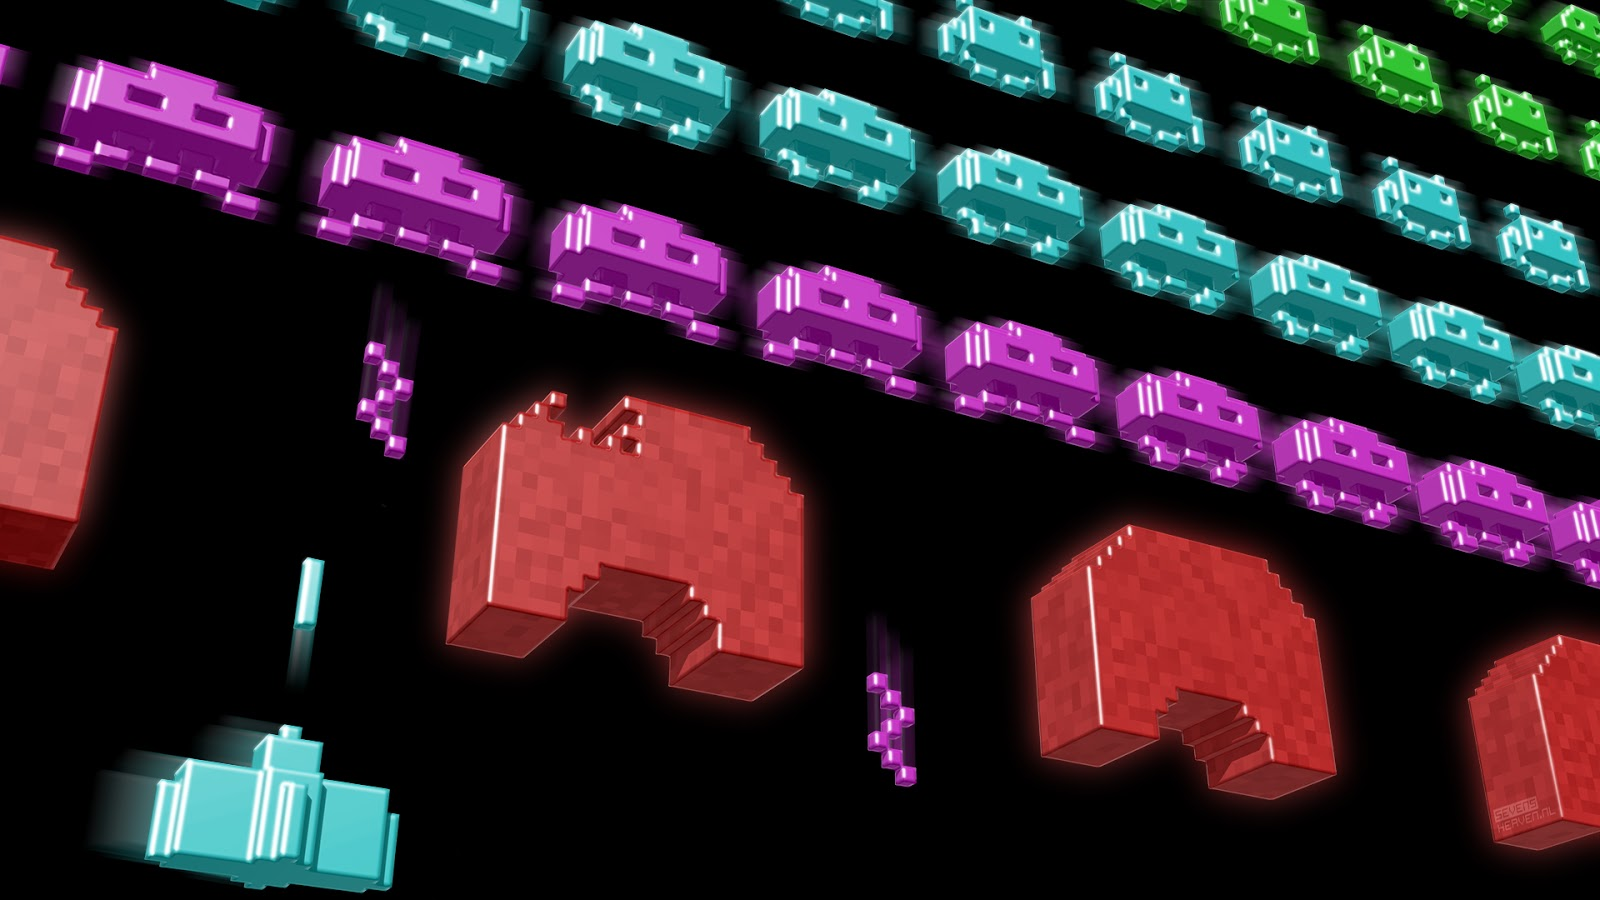 More retro style space invaders desktop wallpaper graphics for Space invaders